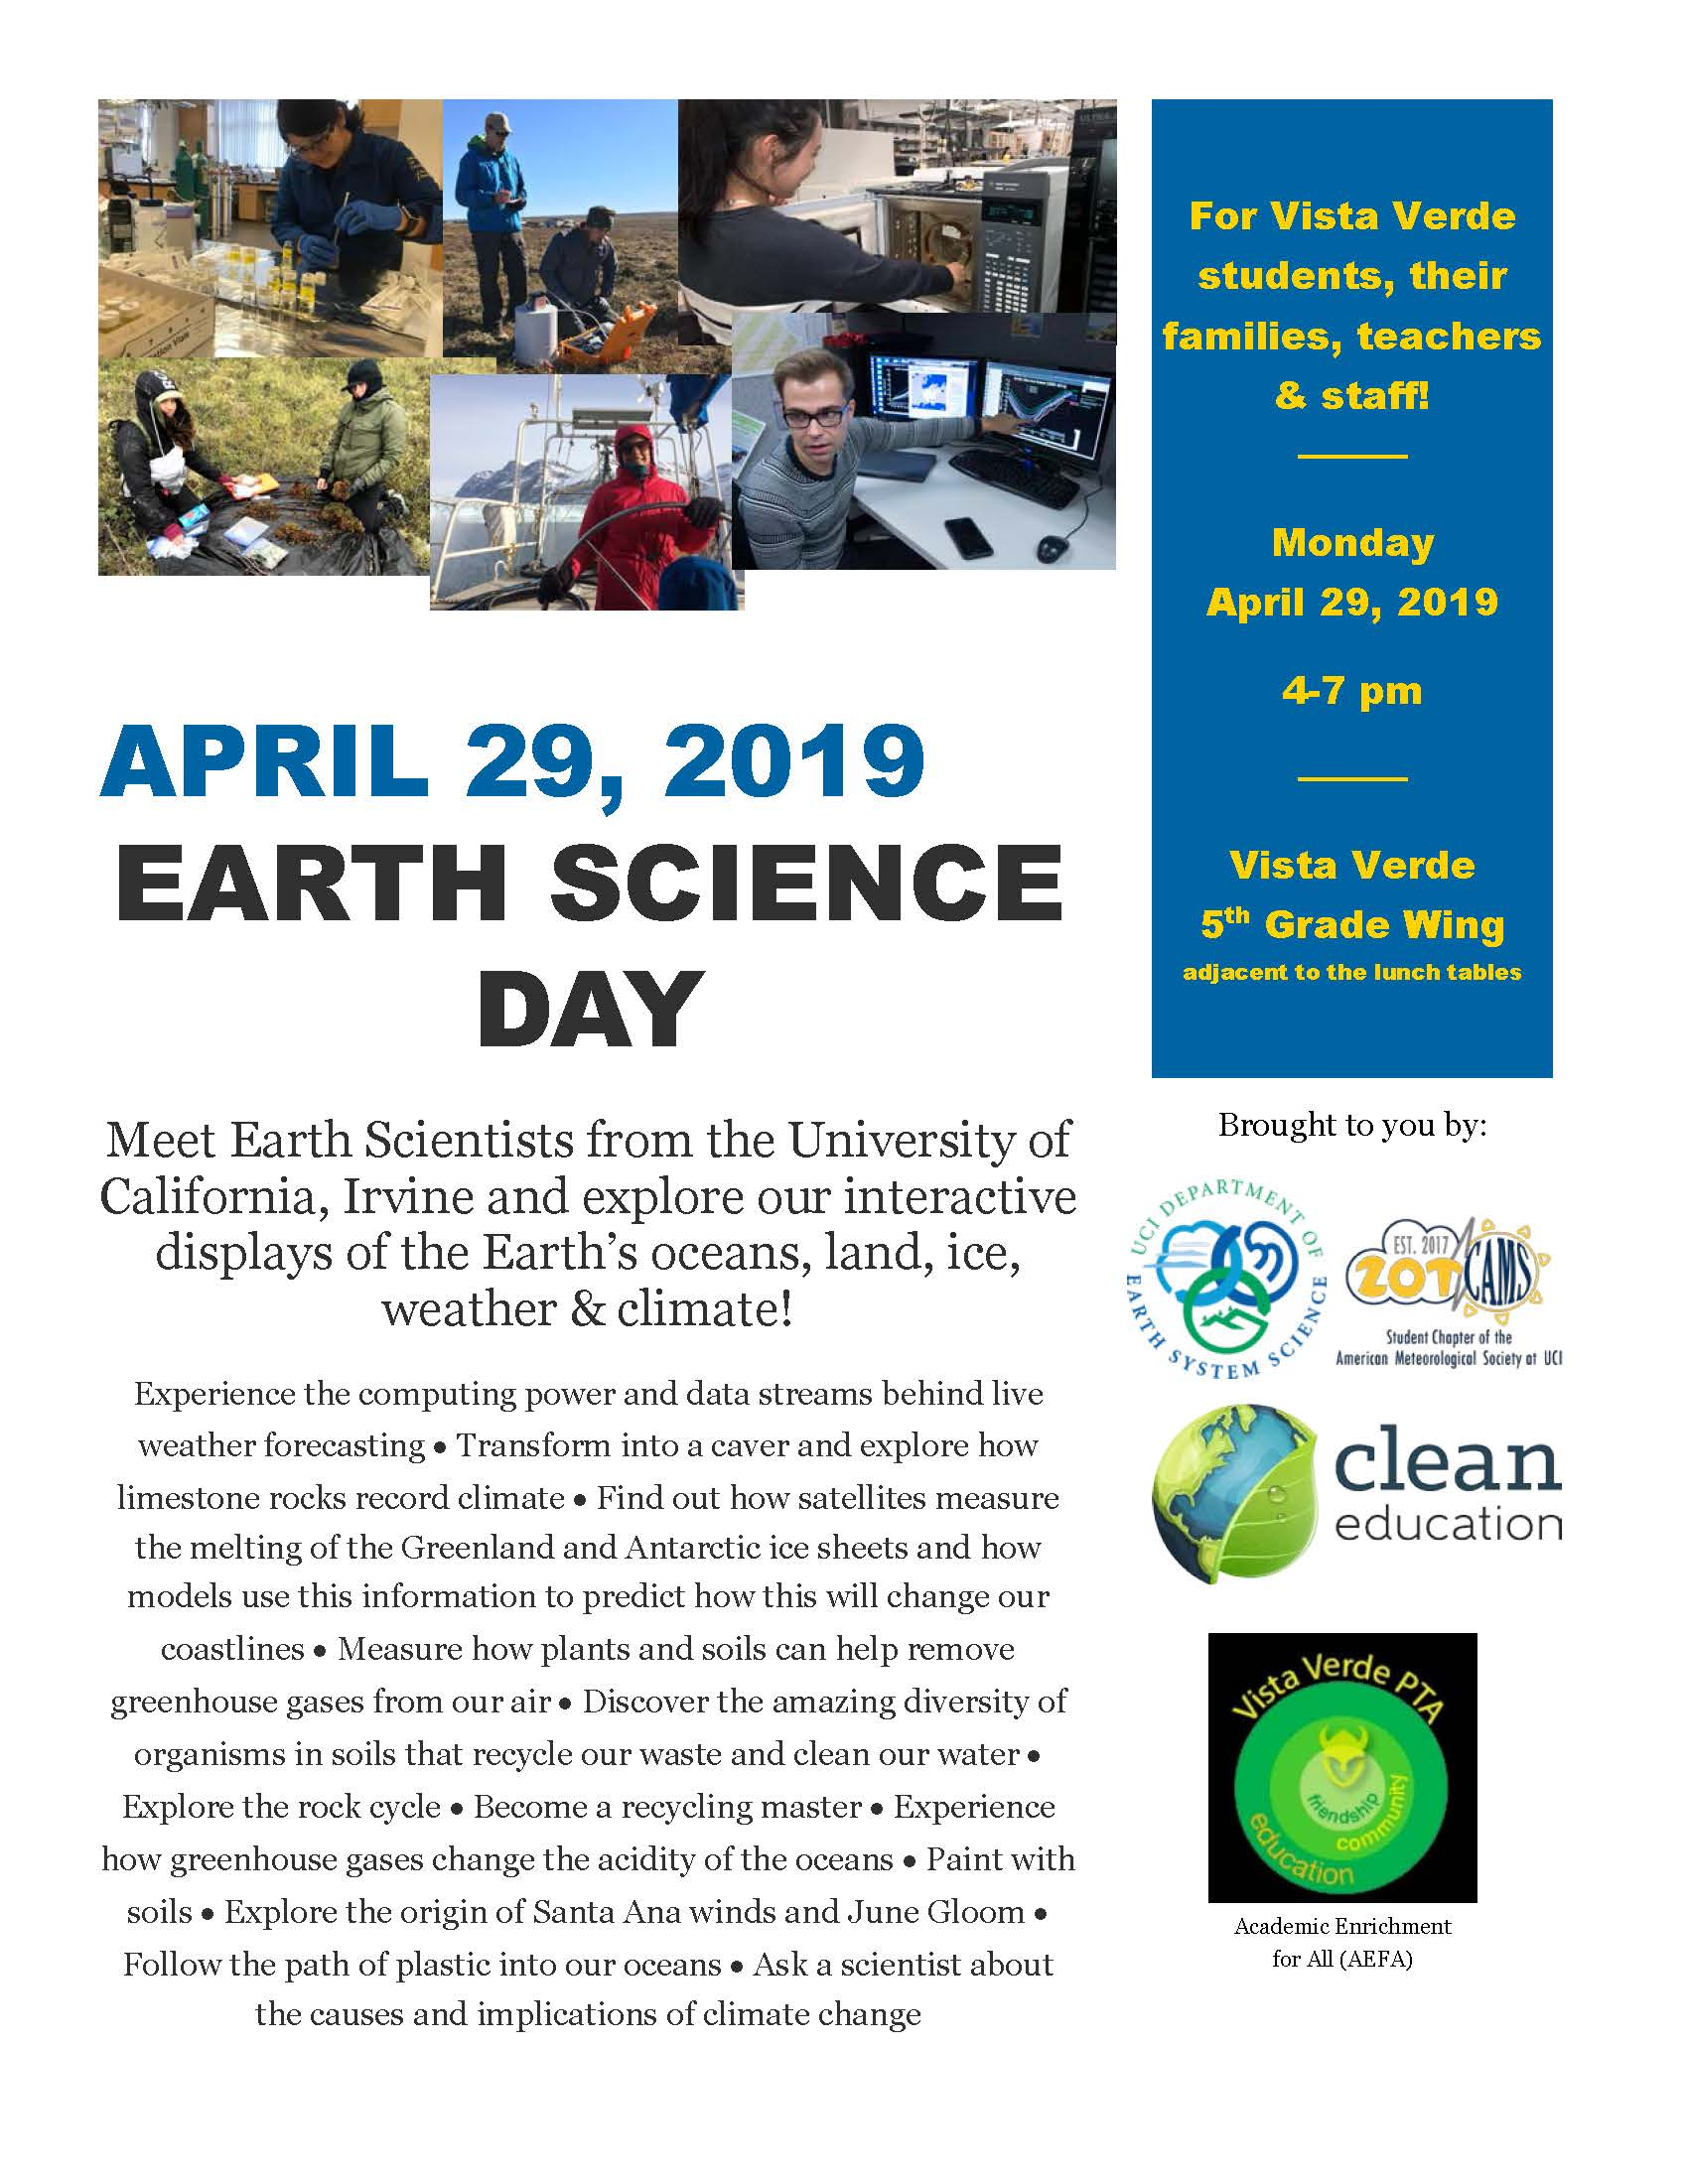 Earth Science Day 2019